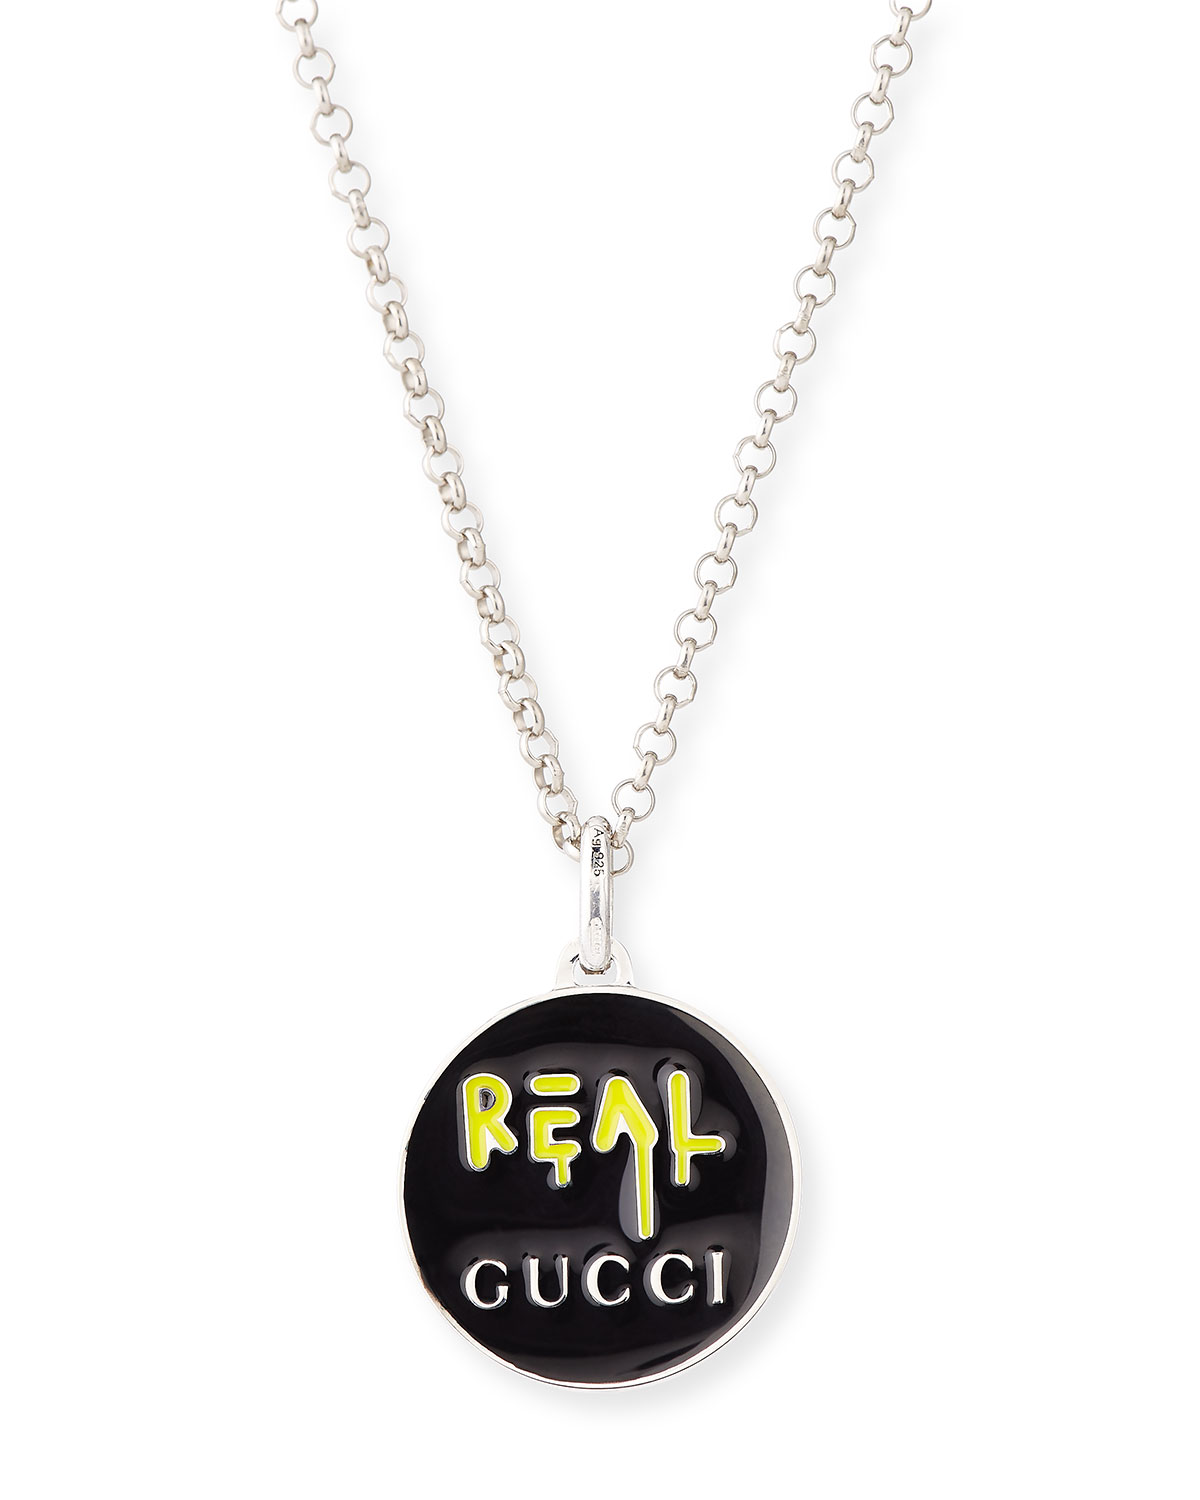 Gucci guccighost mens sterling silver real necklace neiman marcus aloadofball Choice Image